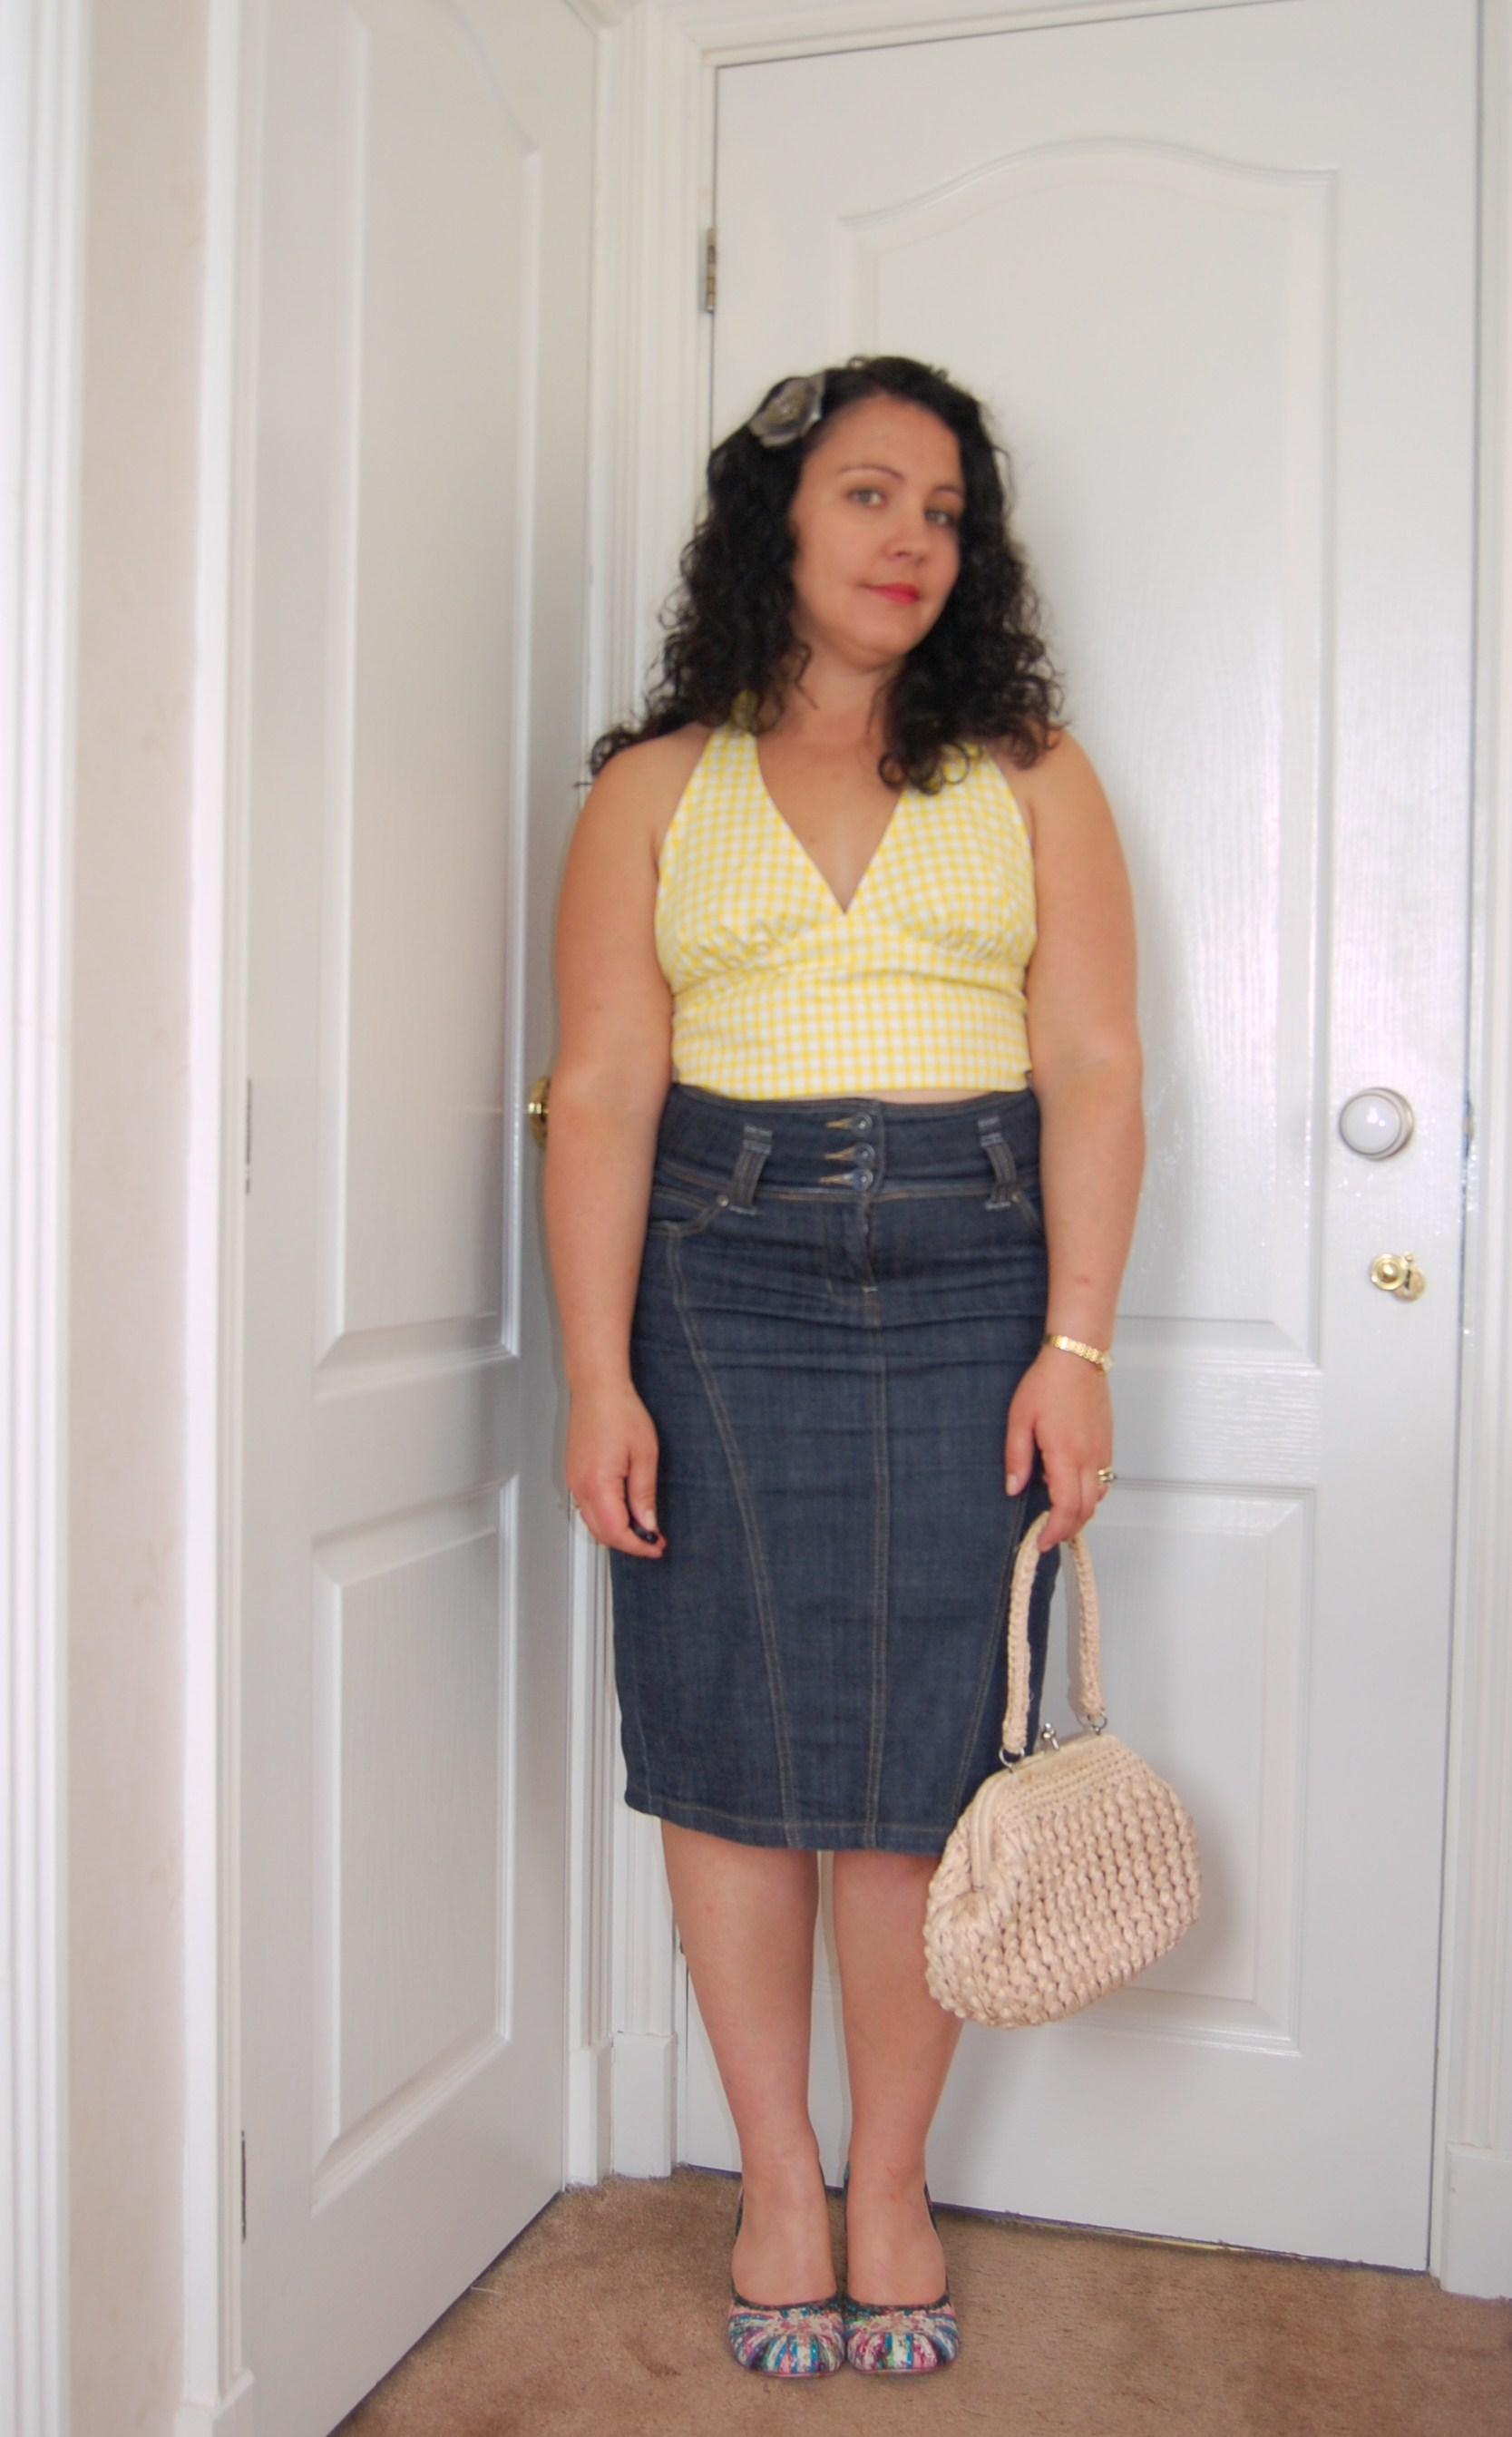 0422 Wear Your Wardrobe Challenge